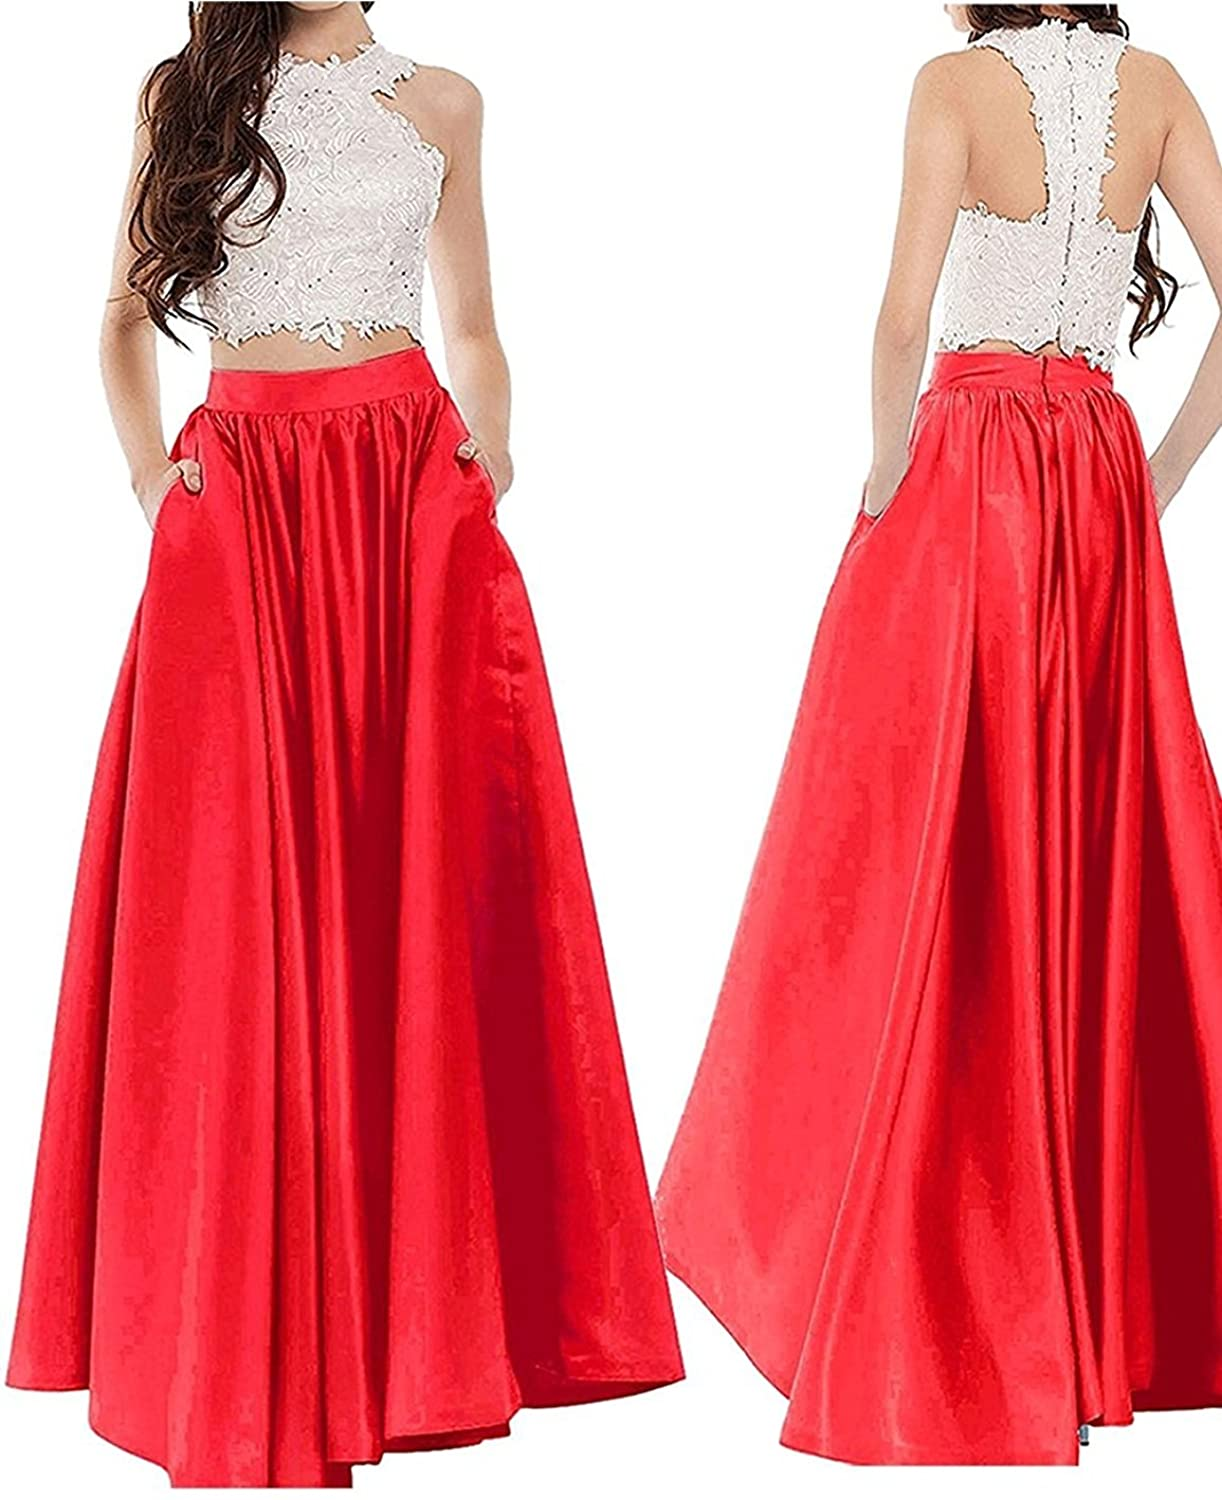 Outgoings Women's Long Skirt Satin High Waist A-line Maxi Prom Party Skirt with Pockets